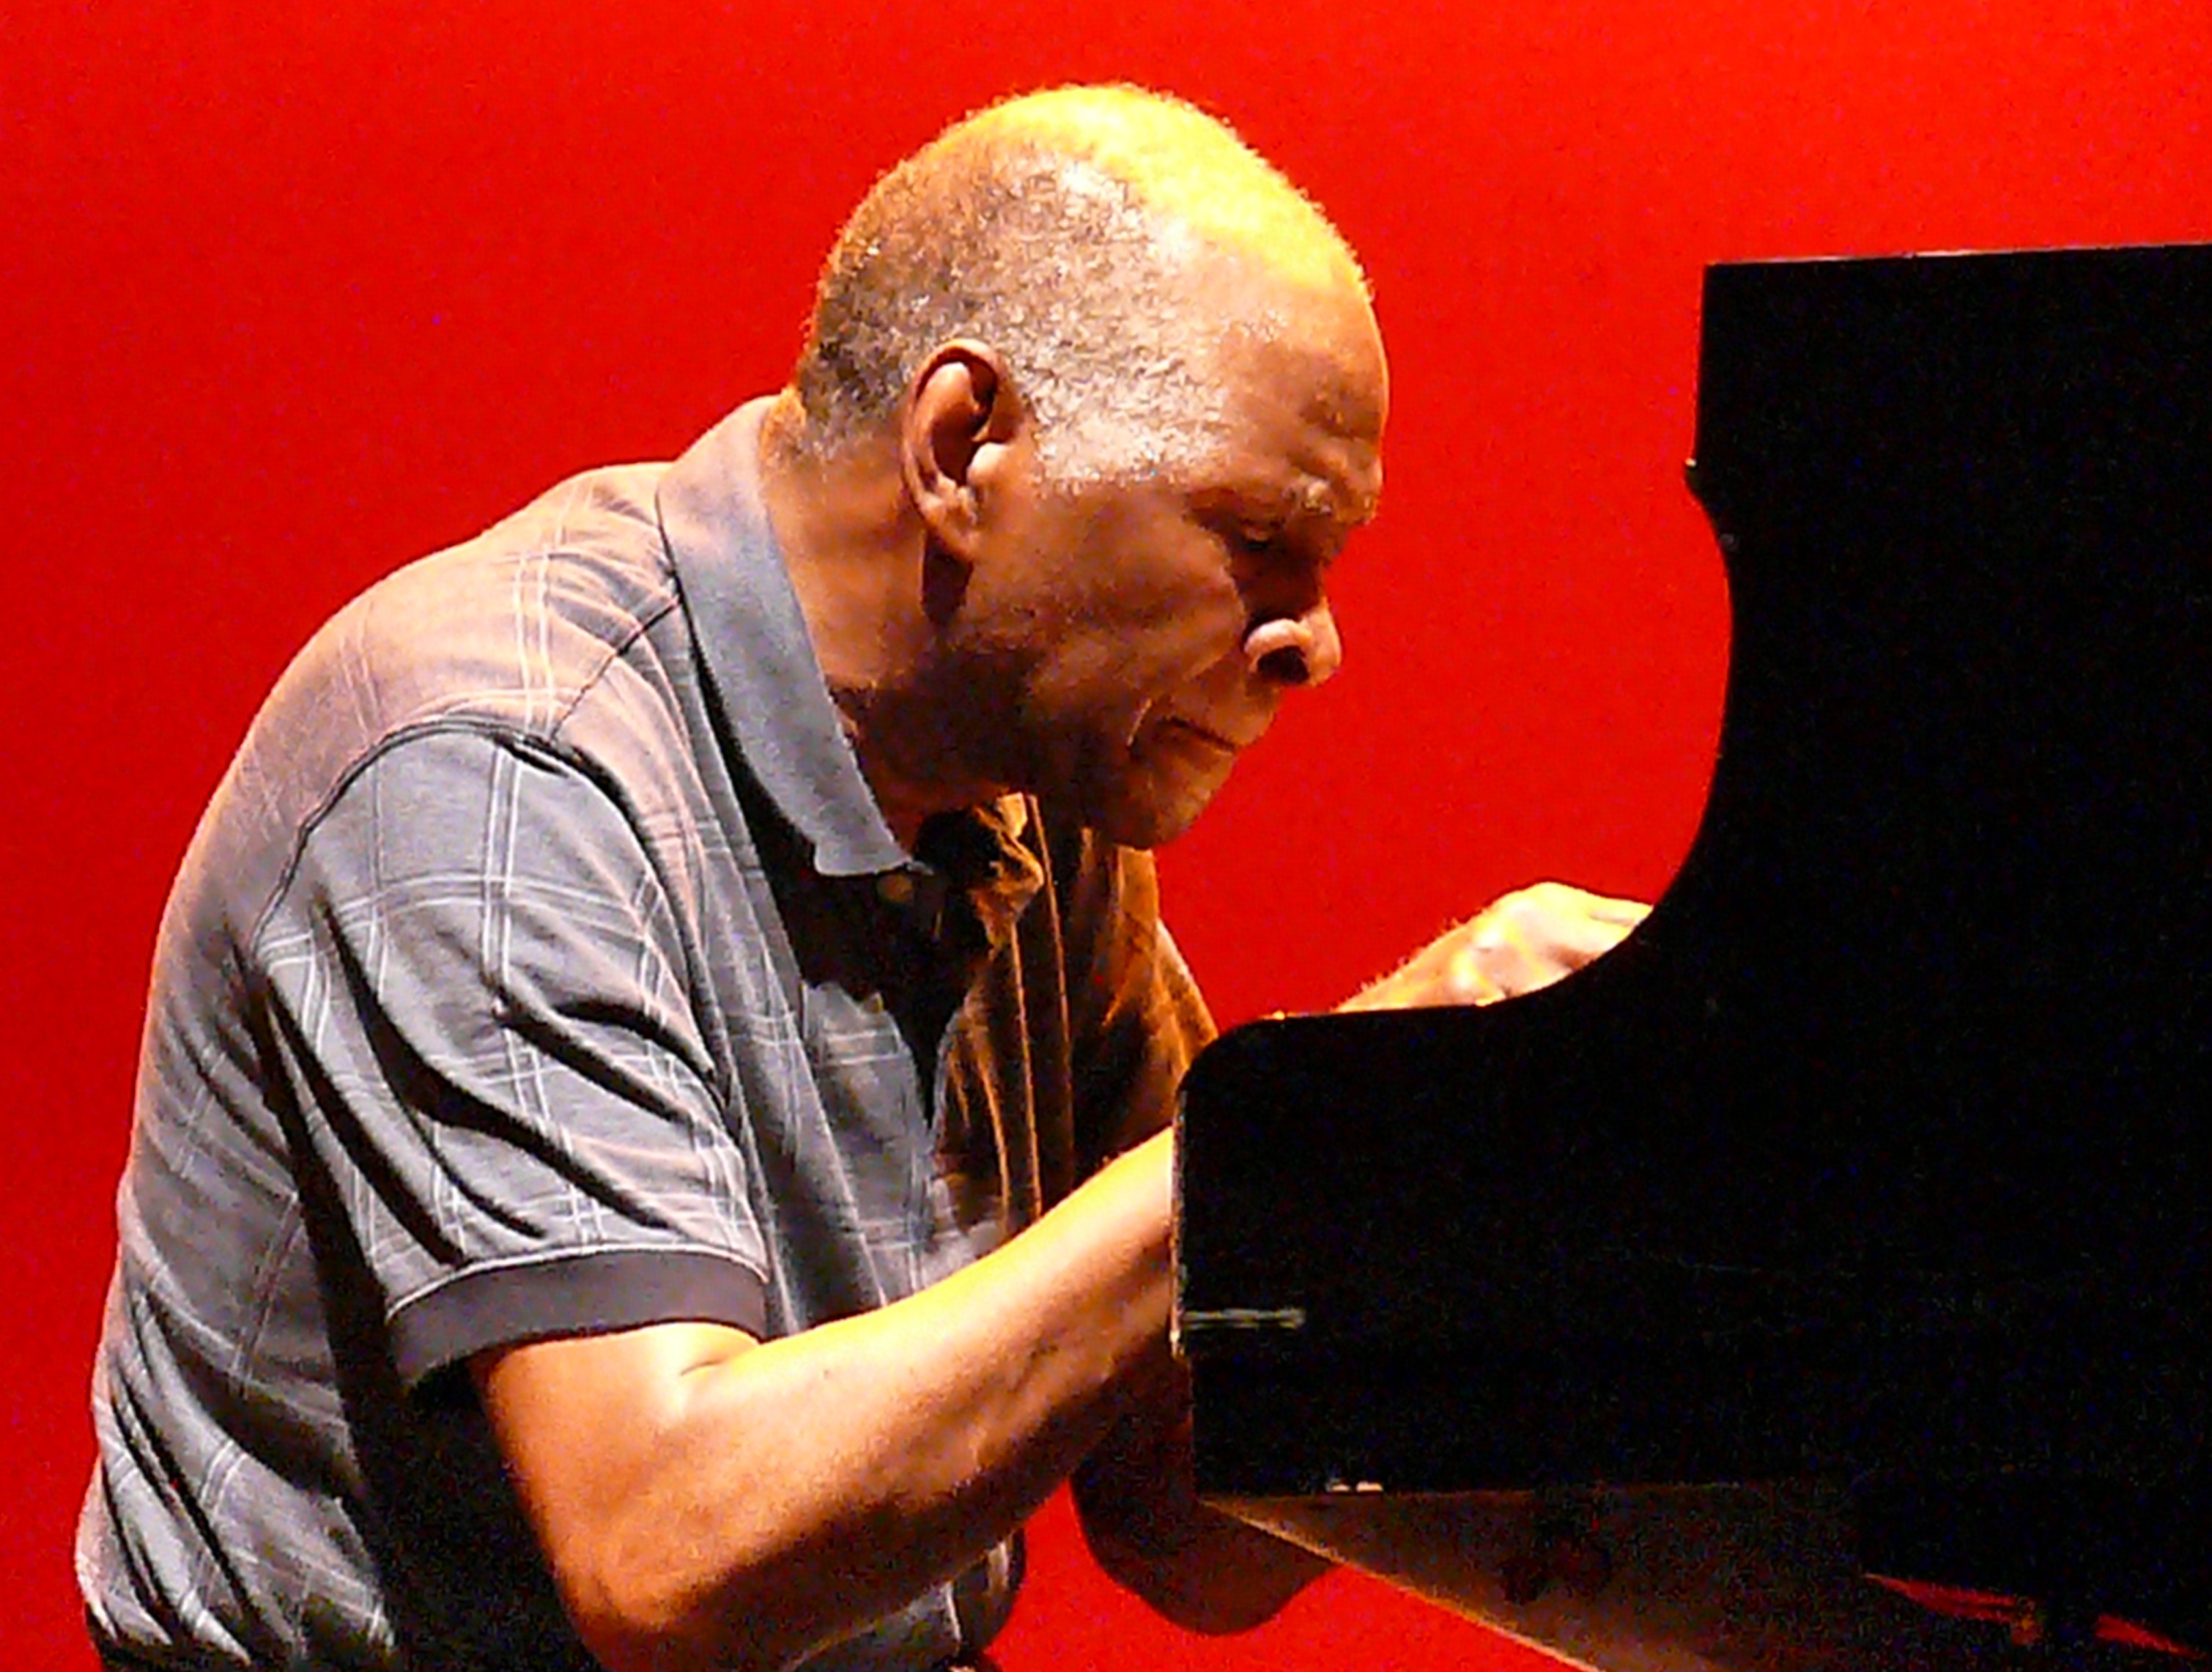 Muhal Richard Abrams Solo at Vision Festival 2010